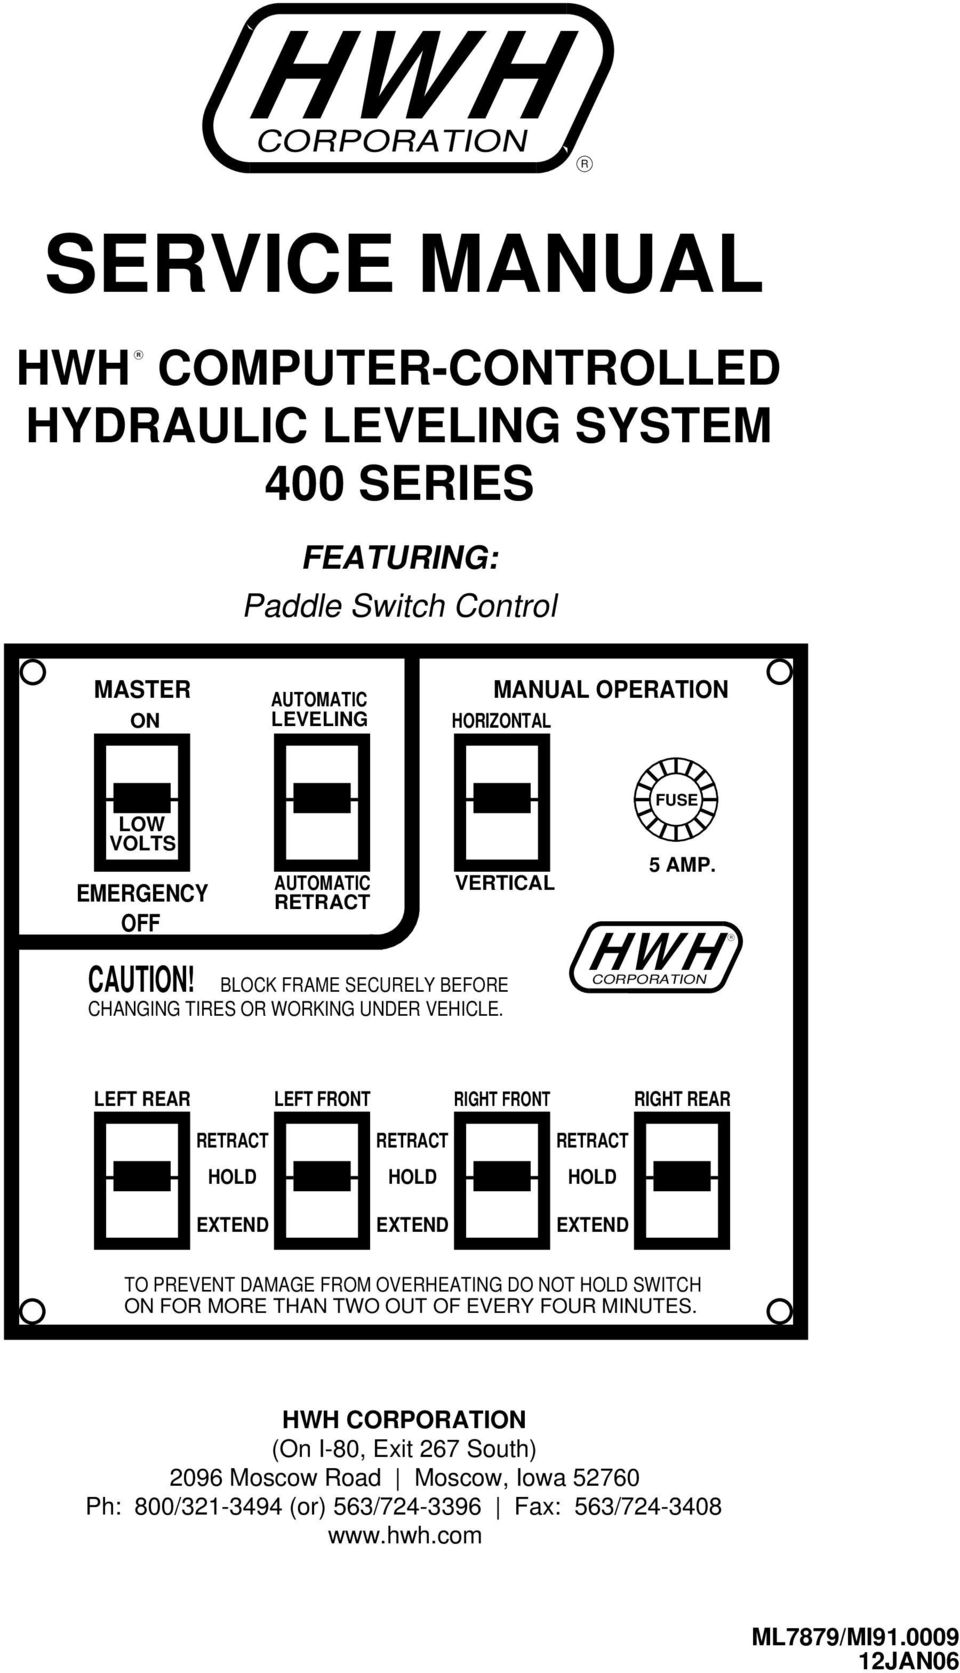 HWH R CORPORATION TO PREVENT DAMAGE FROM OVERHEATING DO NOT SWITCH HWH  CORPORATION (On I